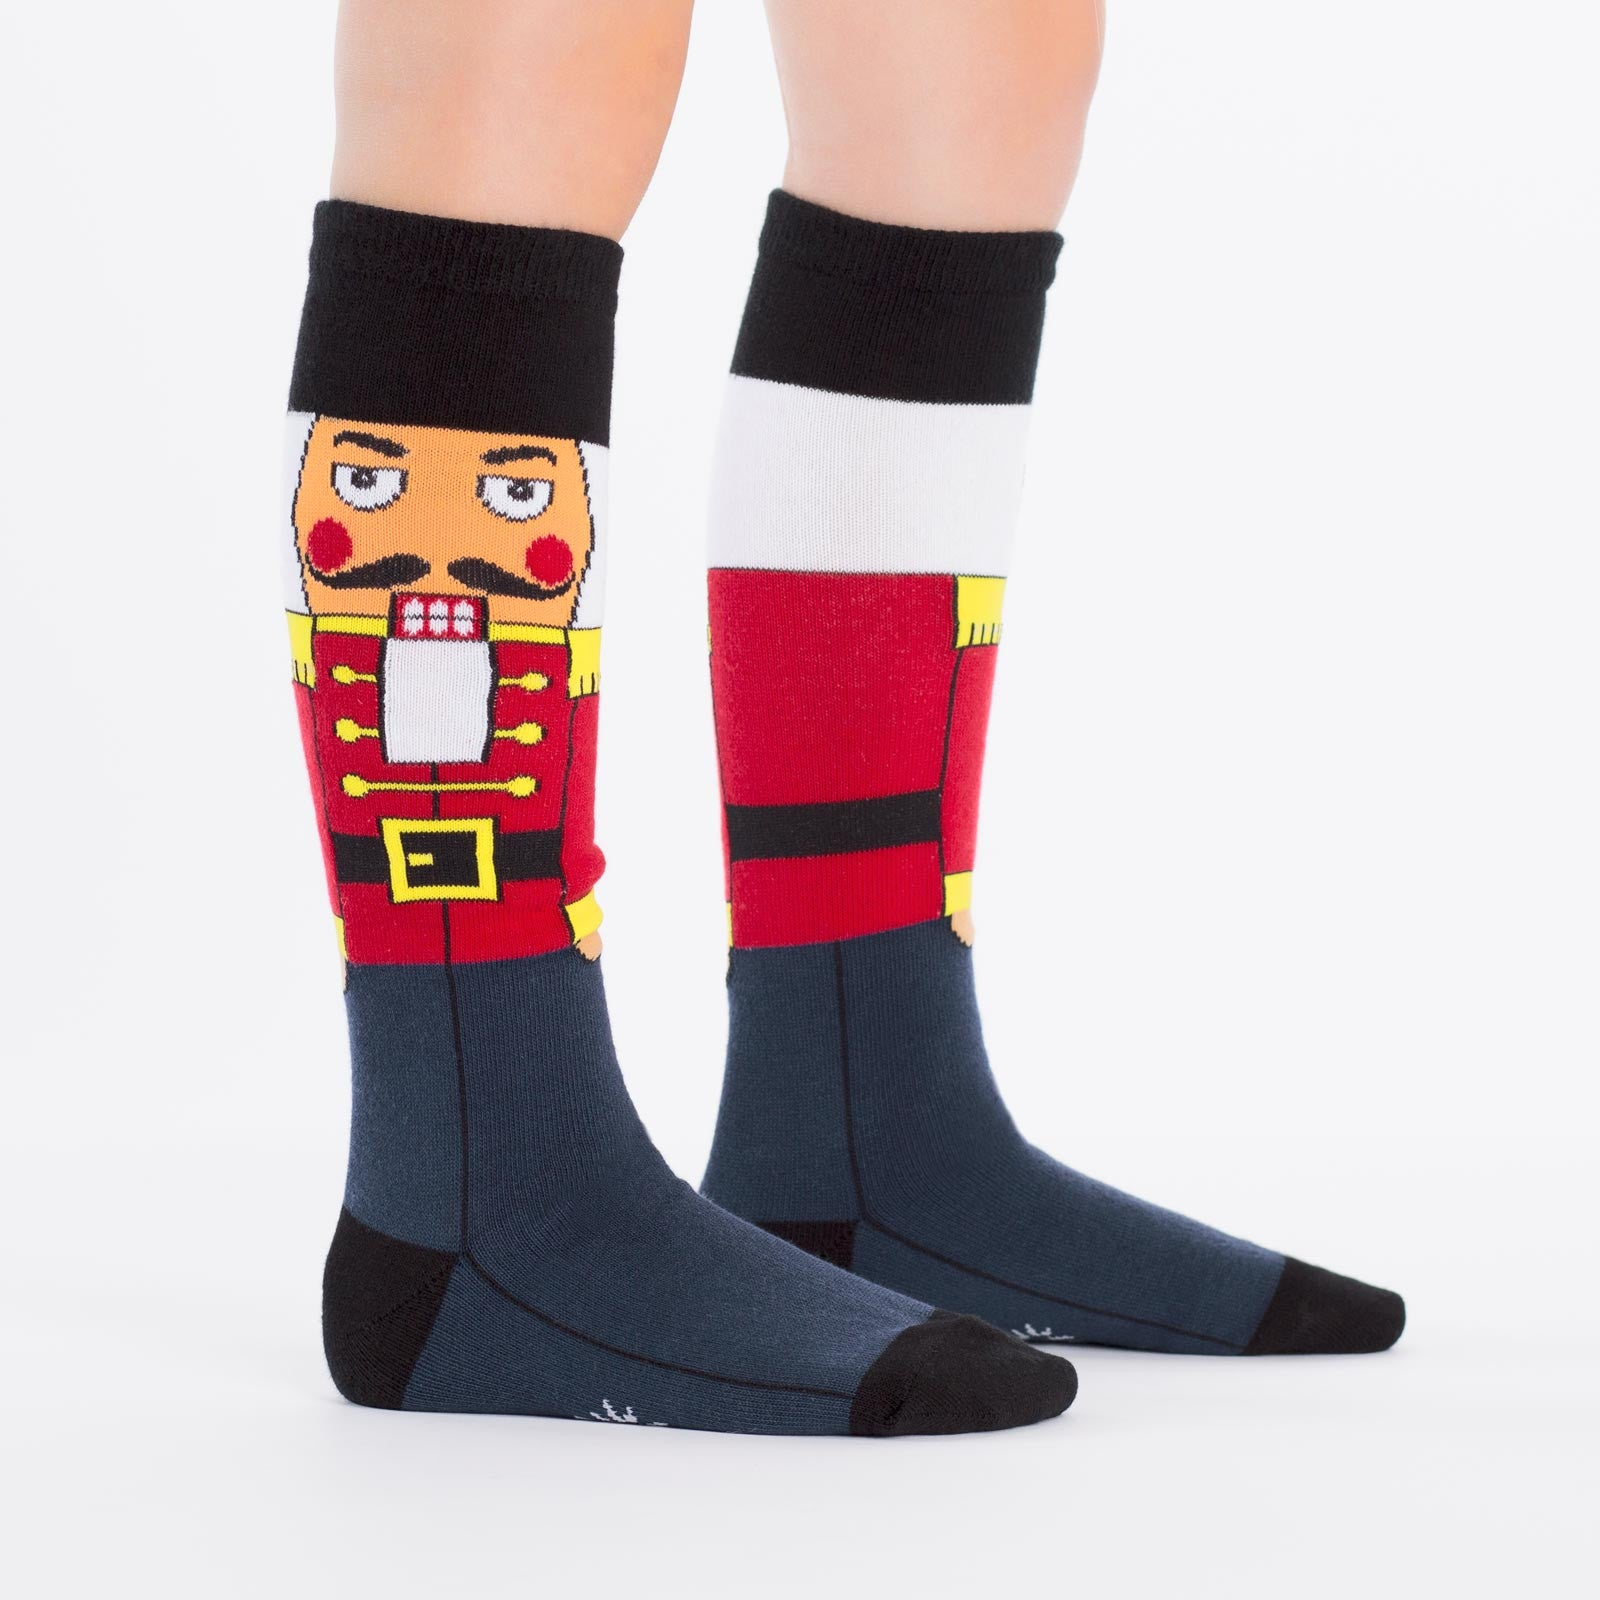 Christmas Socks - Kids' Nutcracker Knee High Socks | Joy ...